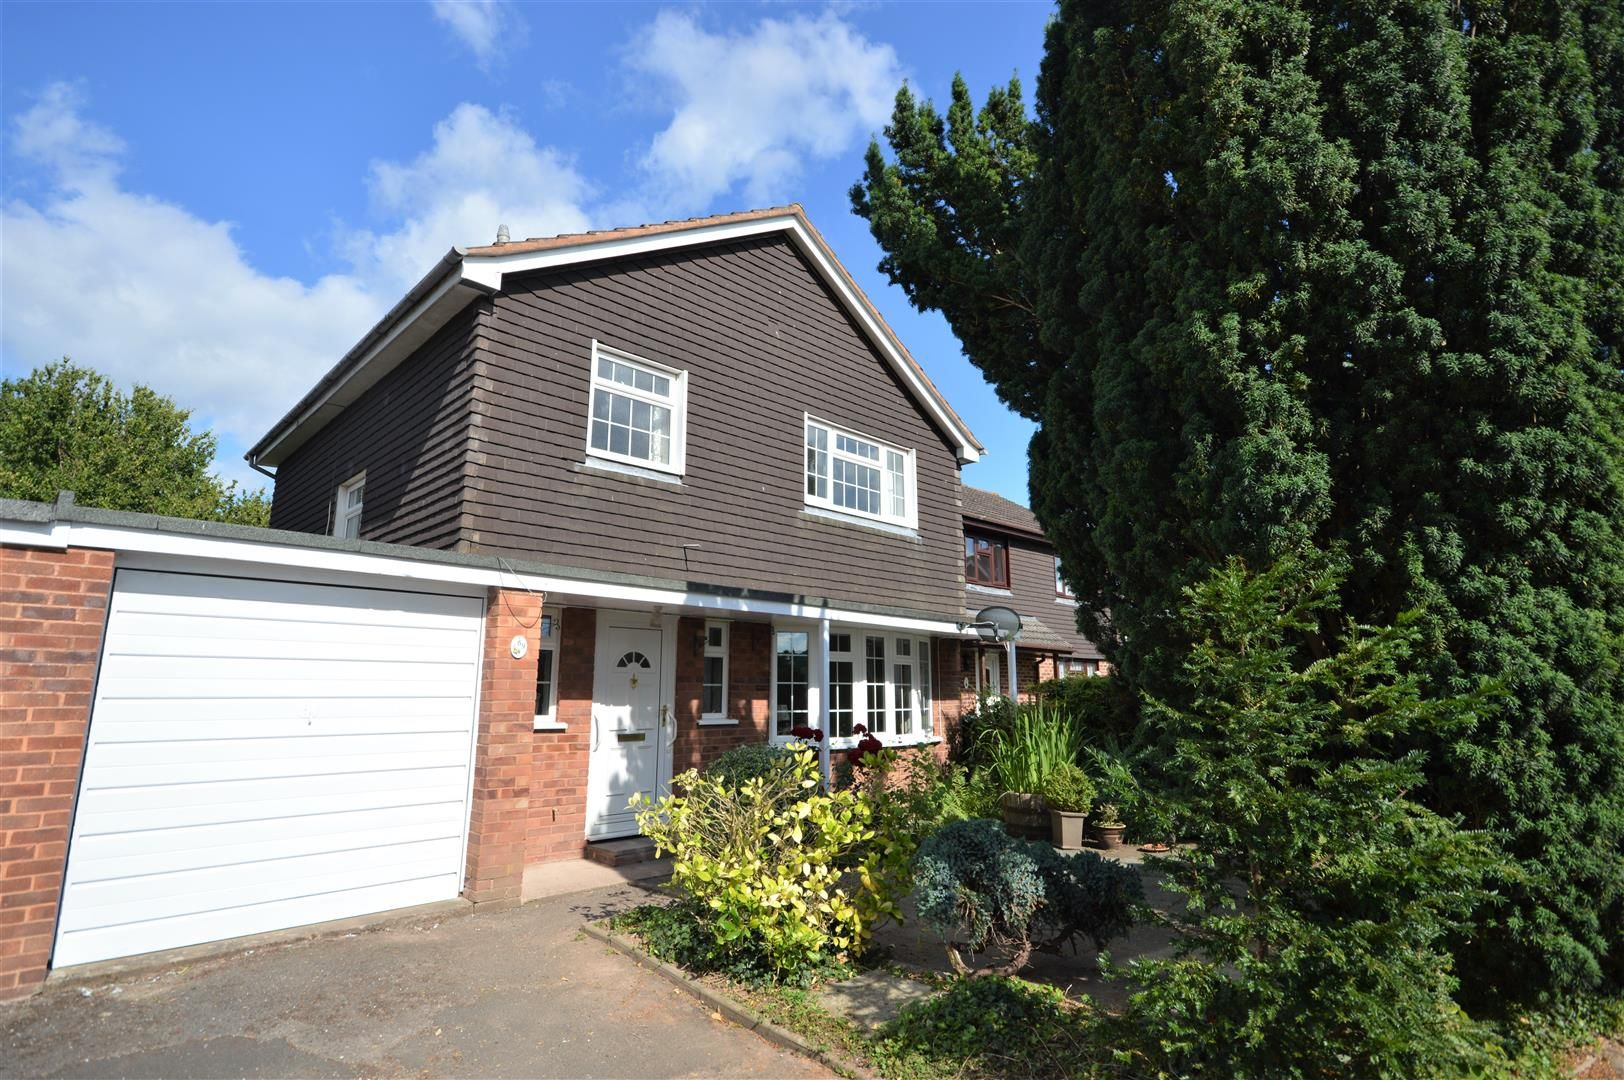 3 bed link-detached-house for sale in Weobley - Property Image 1